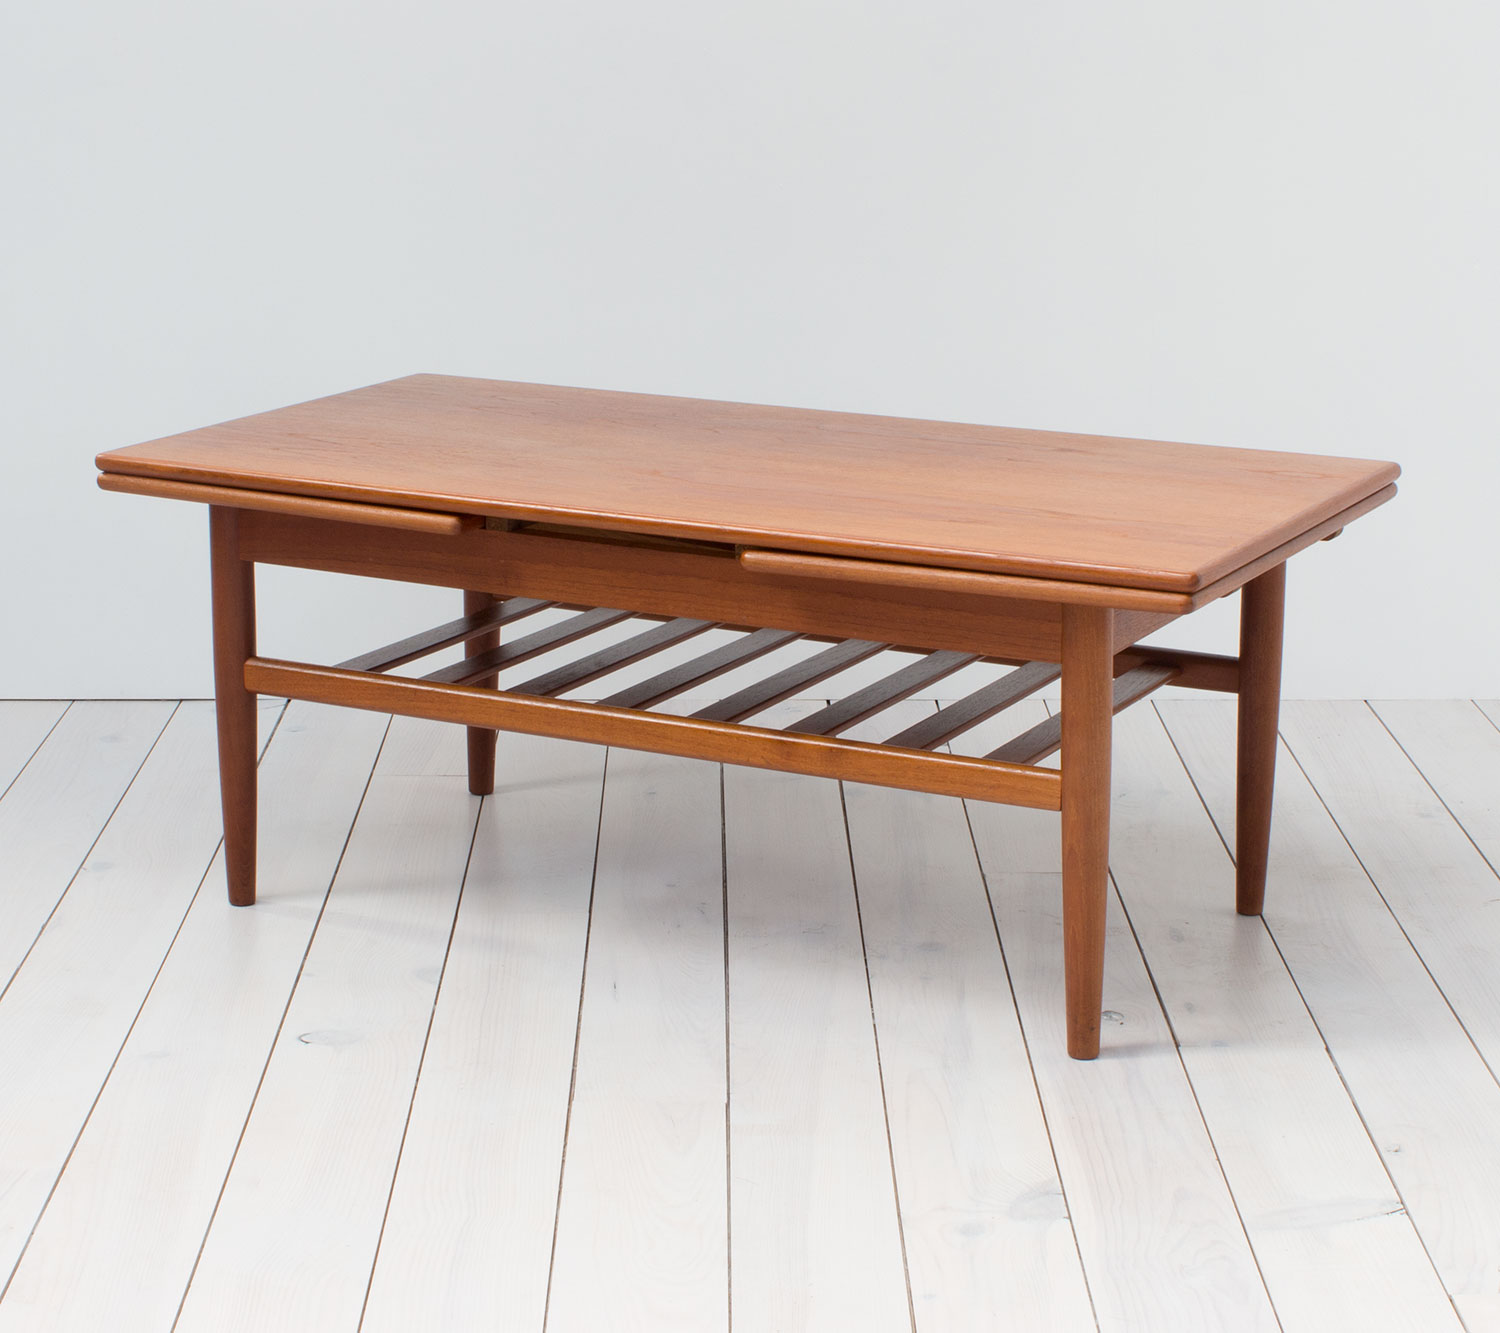 Scandinavian Teak Coffee Table: Danish Teak Metamorphic Coffee Table By Trioh